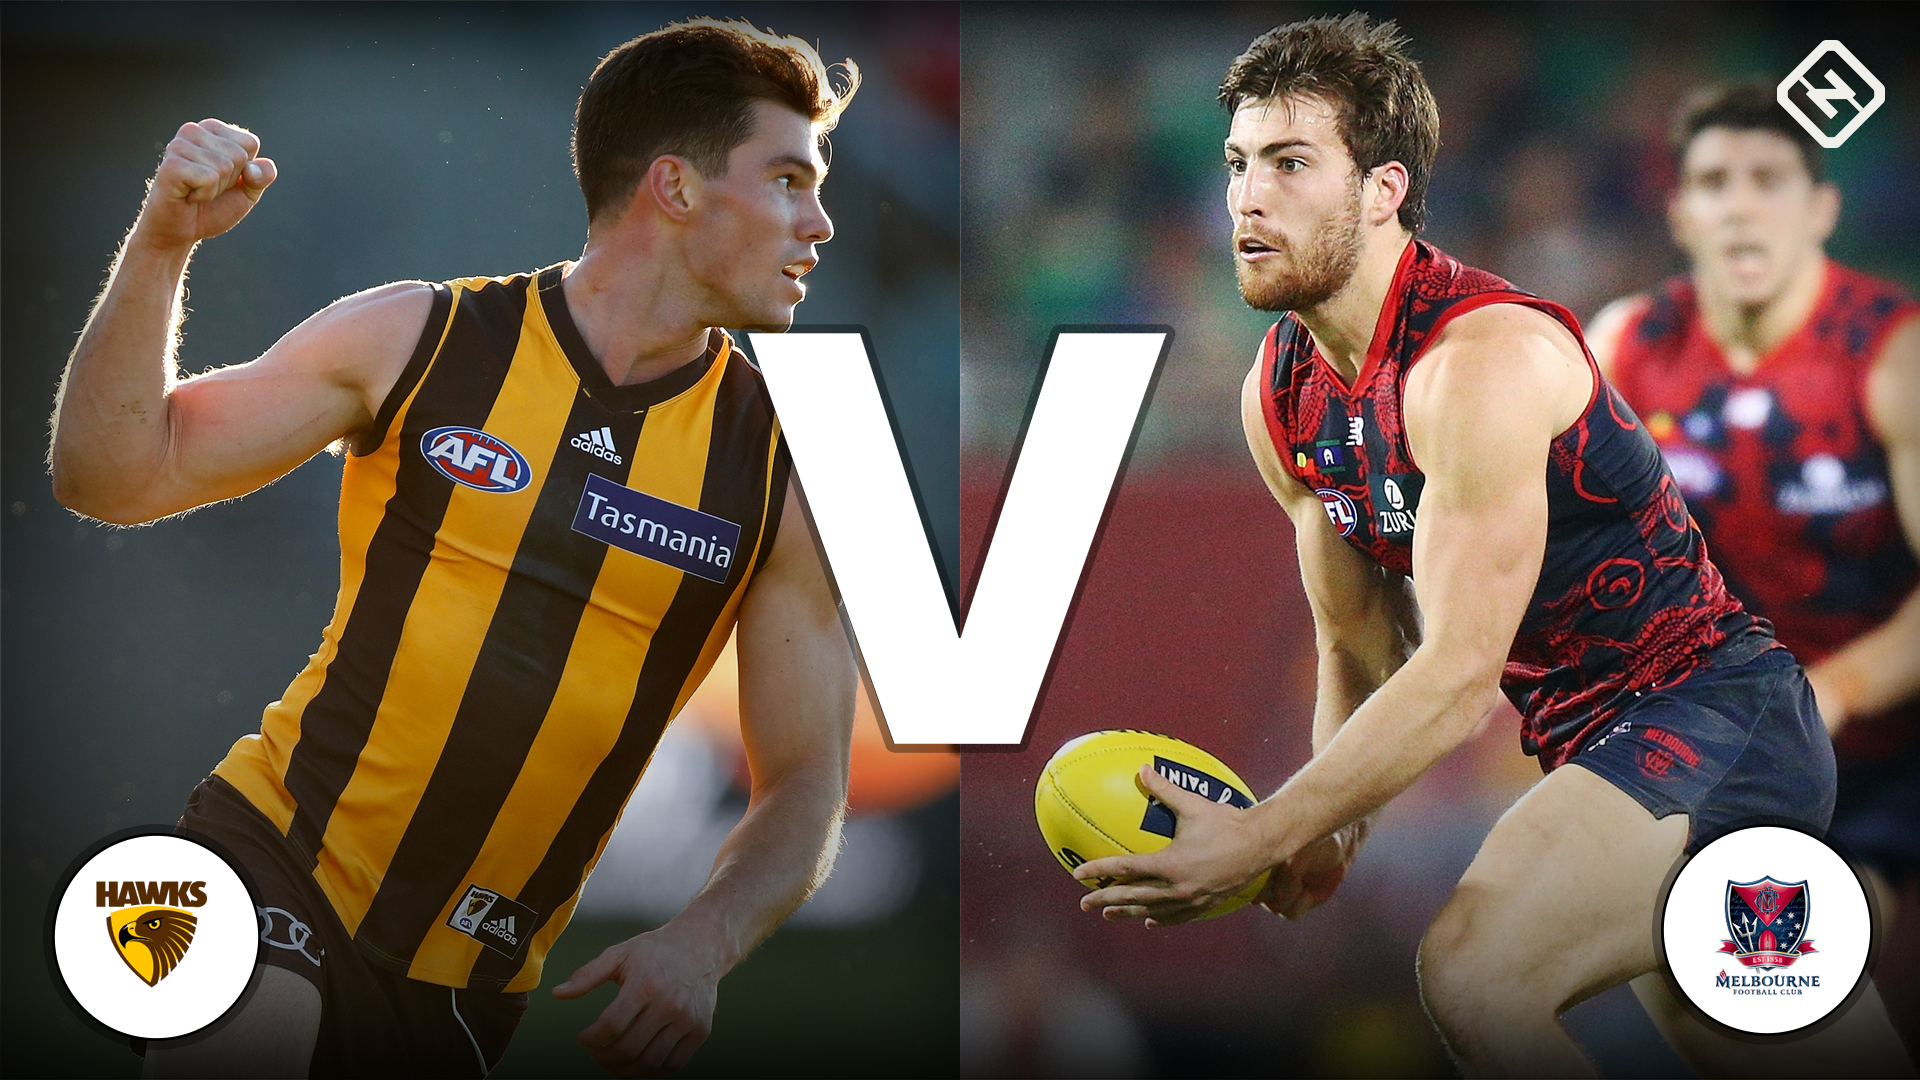 Hawthorn Hawks V Melbourne Demons Preview Teams History And Odds Of Fridays Afl Semi Final Sporting News